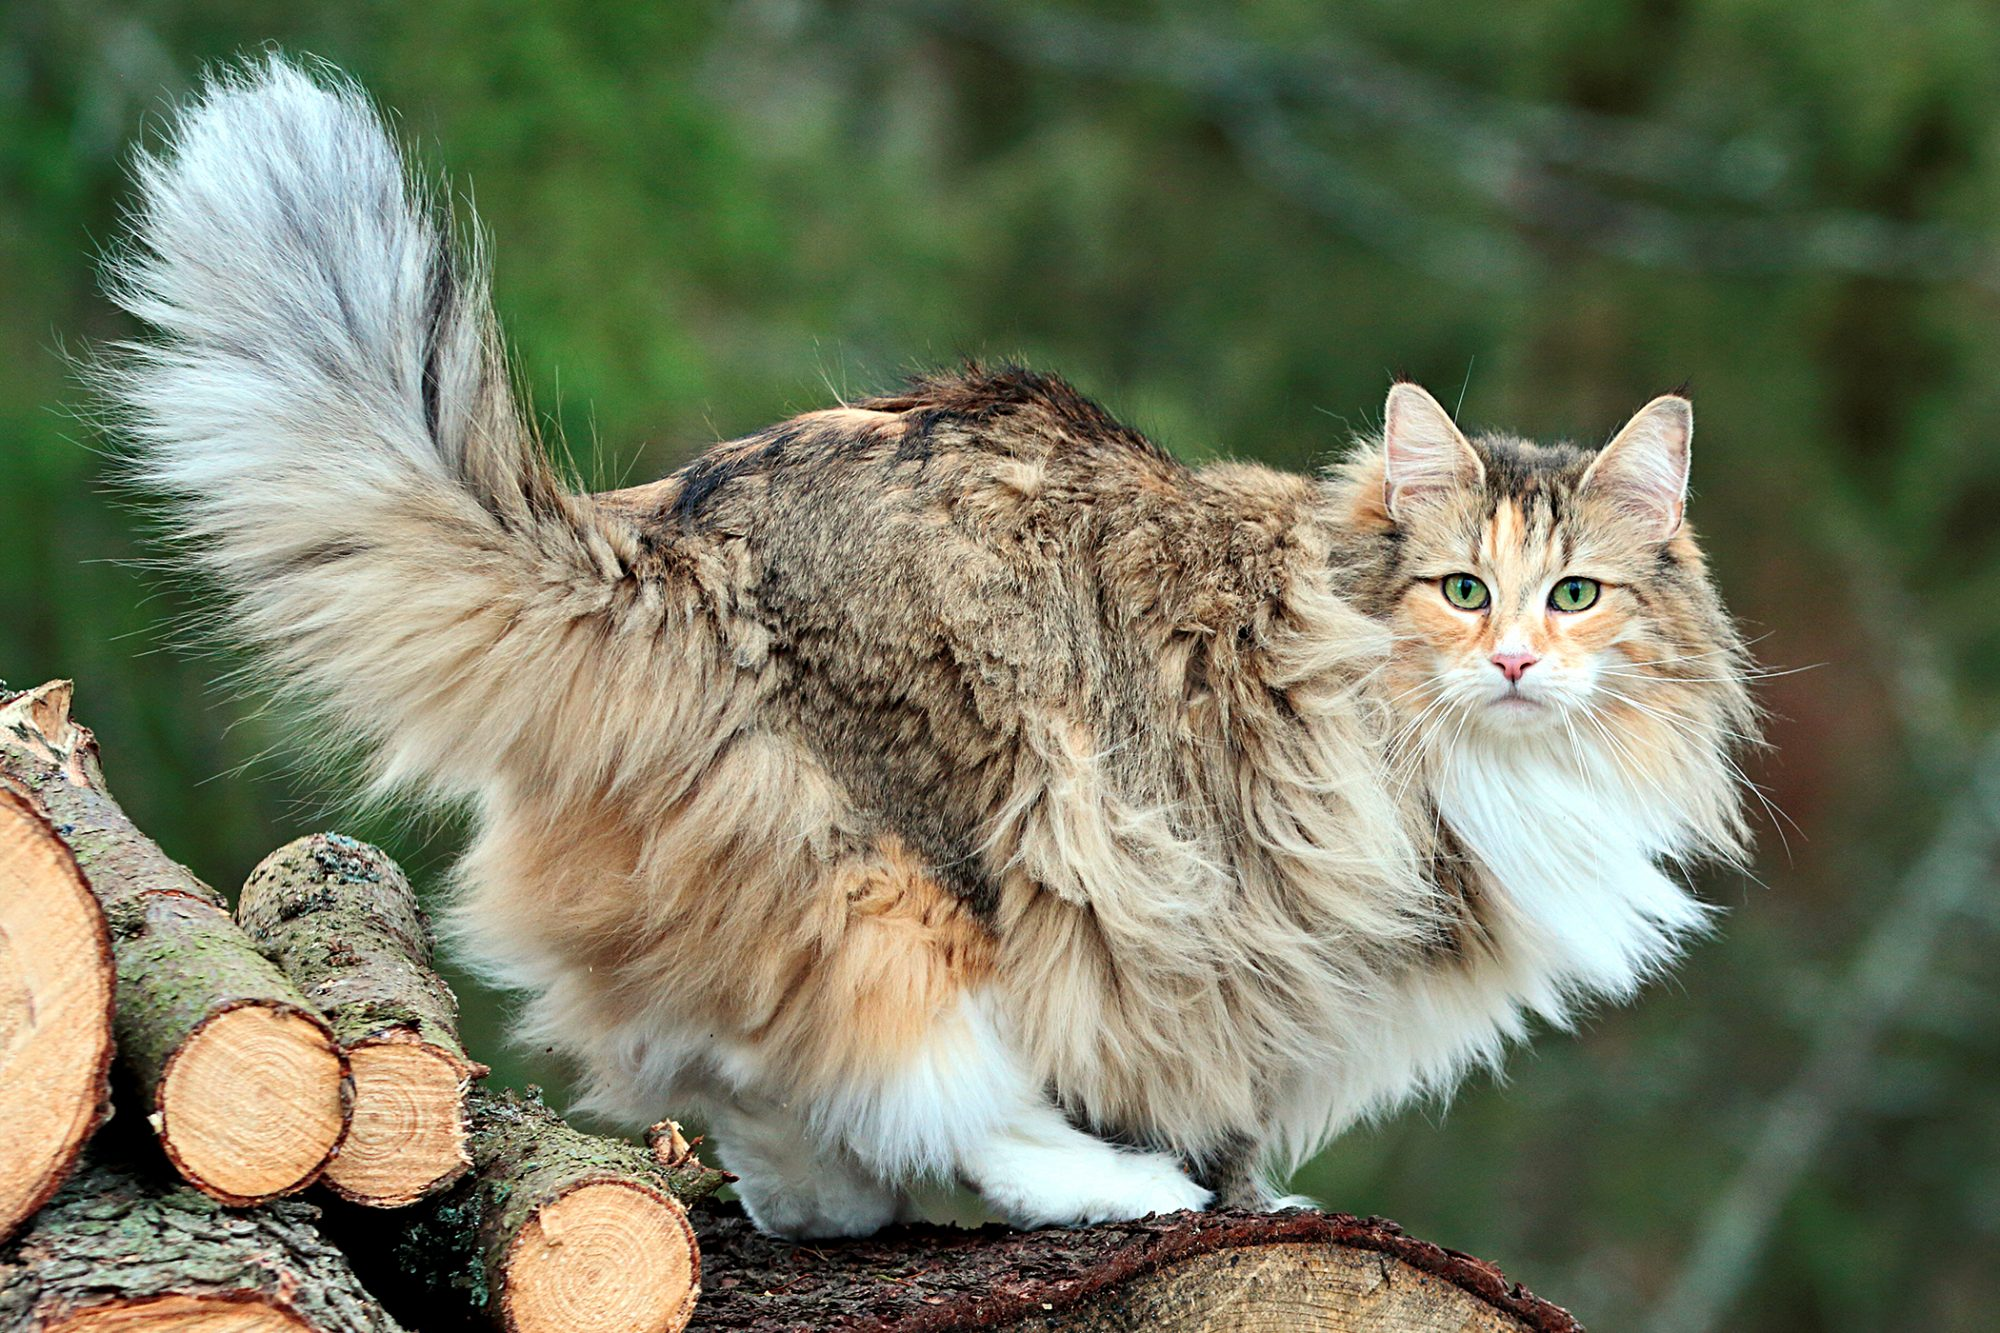 fluffy norweigan forest cat standing on logs